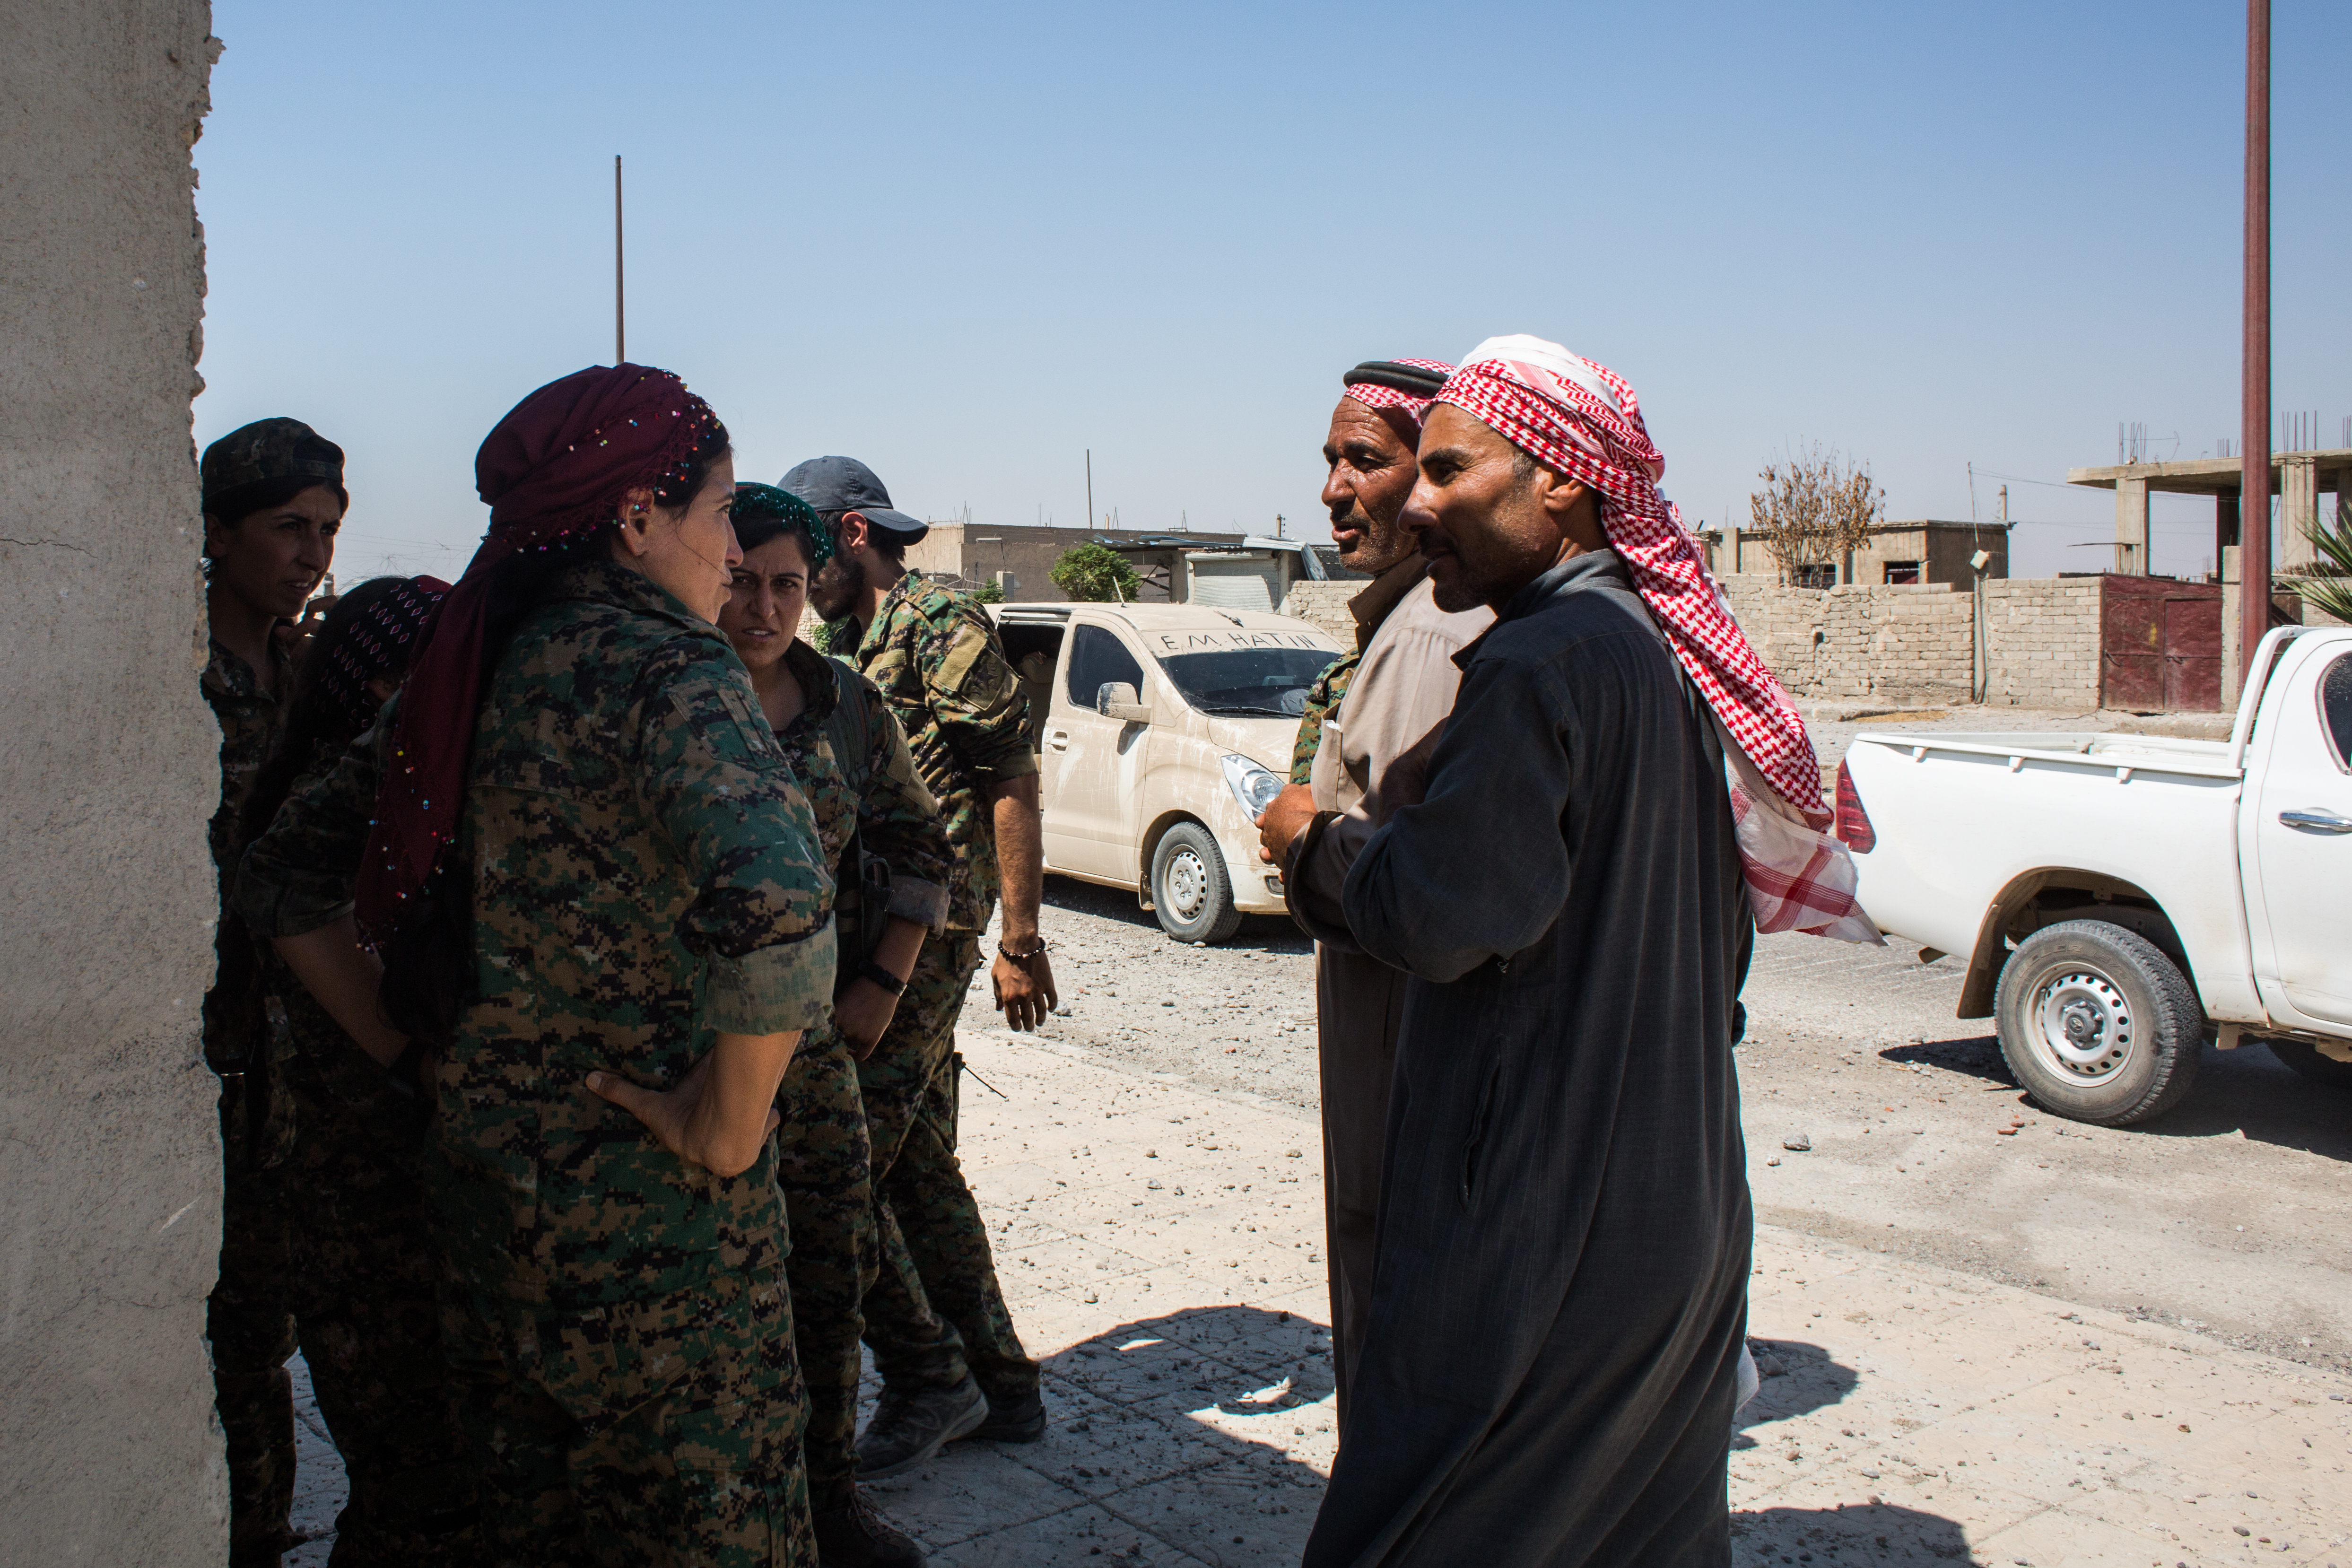 In Rojava men and women are on an equal footing.